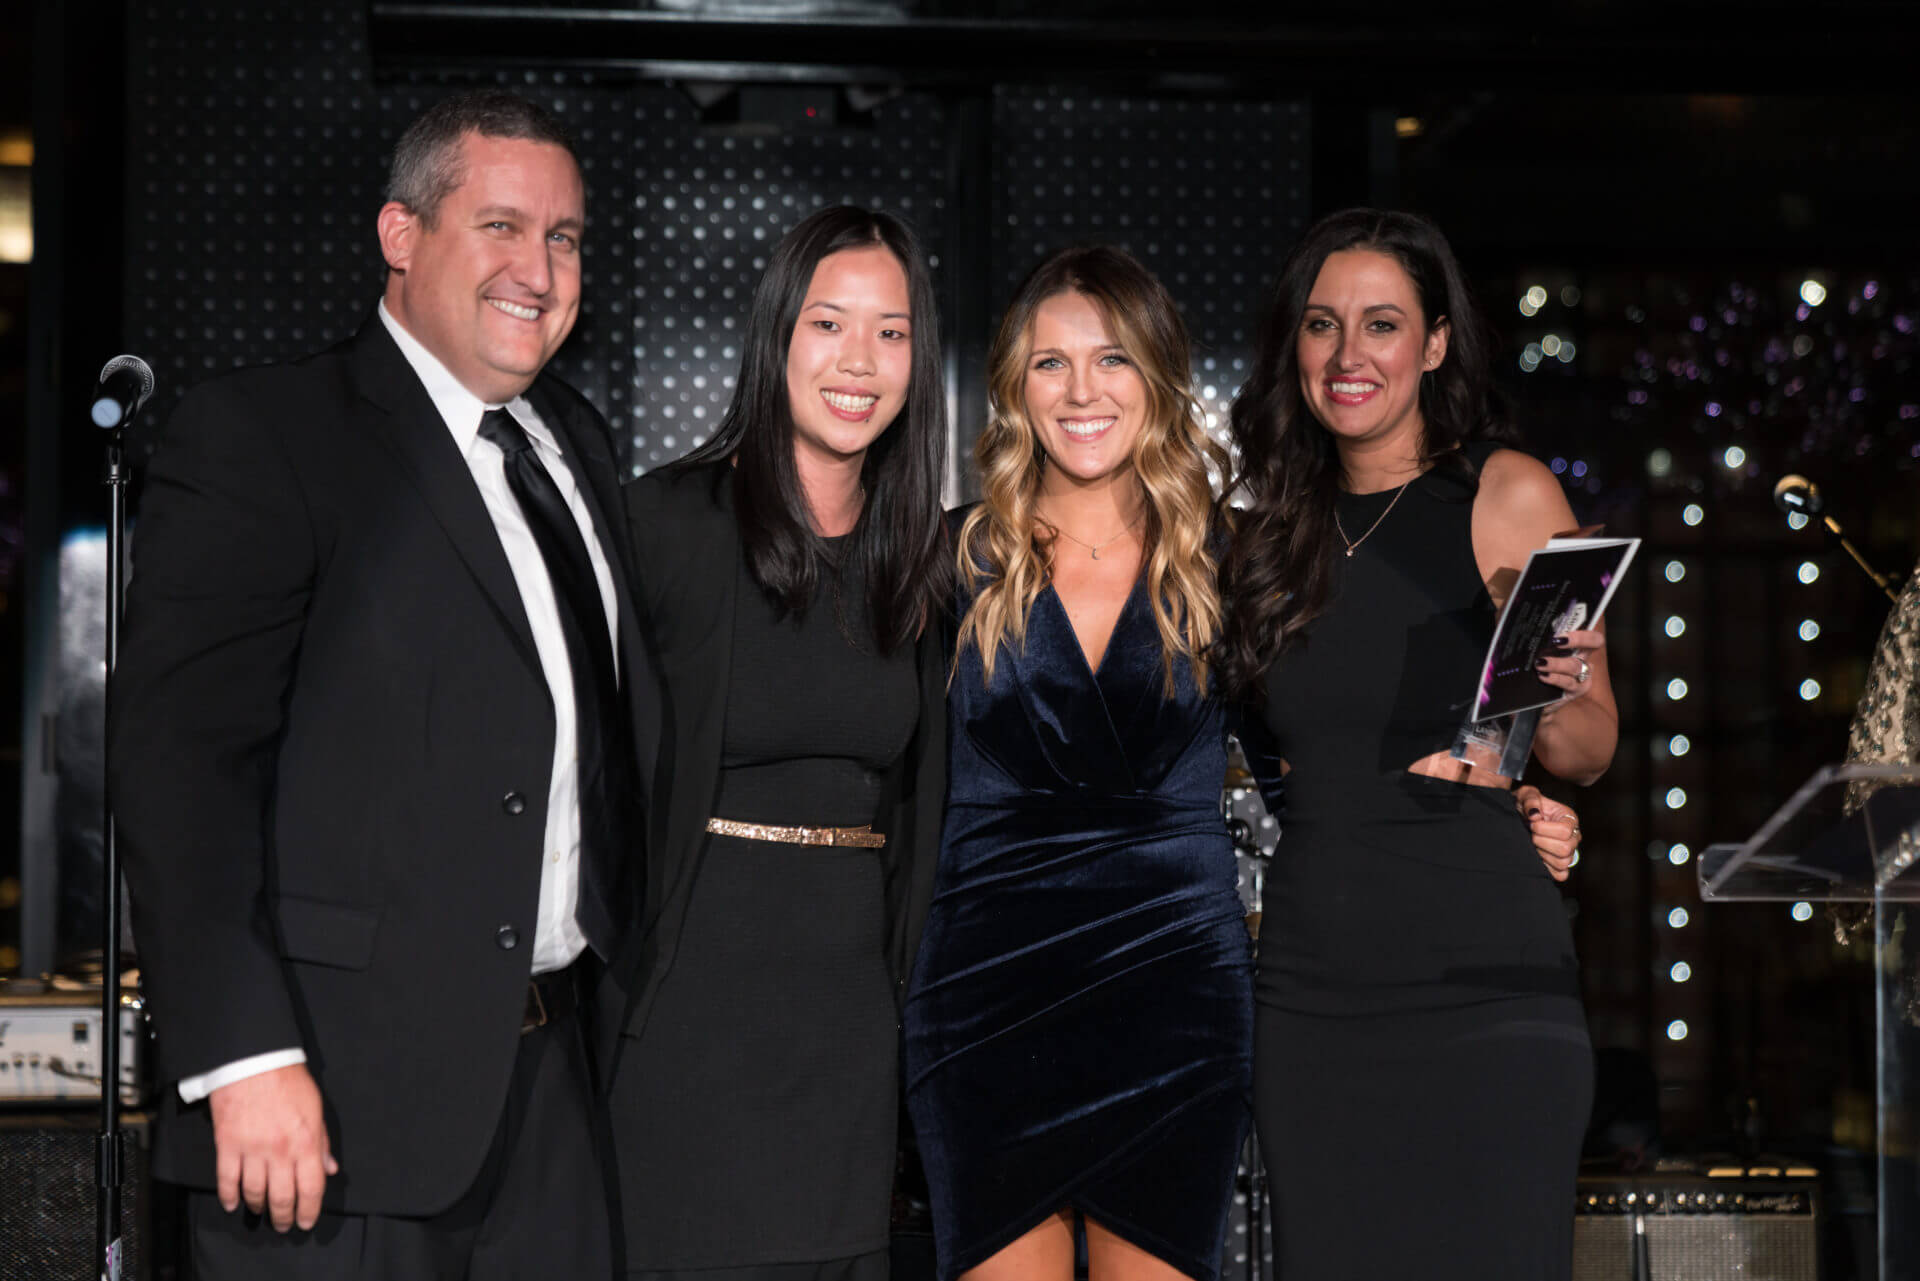 Landy Awards Gala spotlights top performers in the SEO & SEM industry